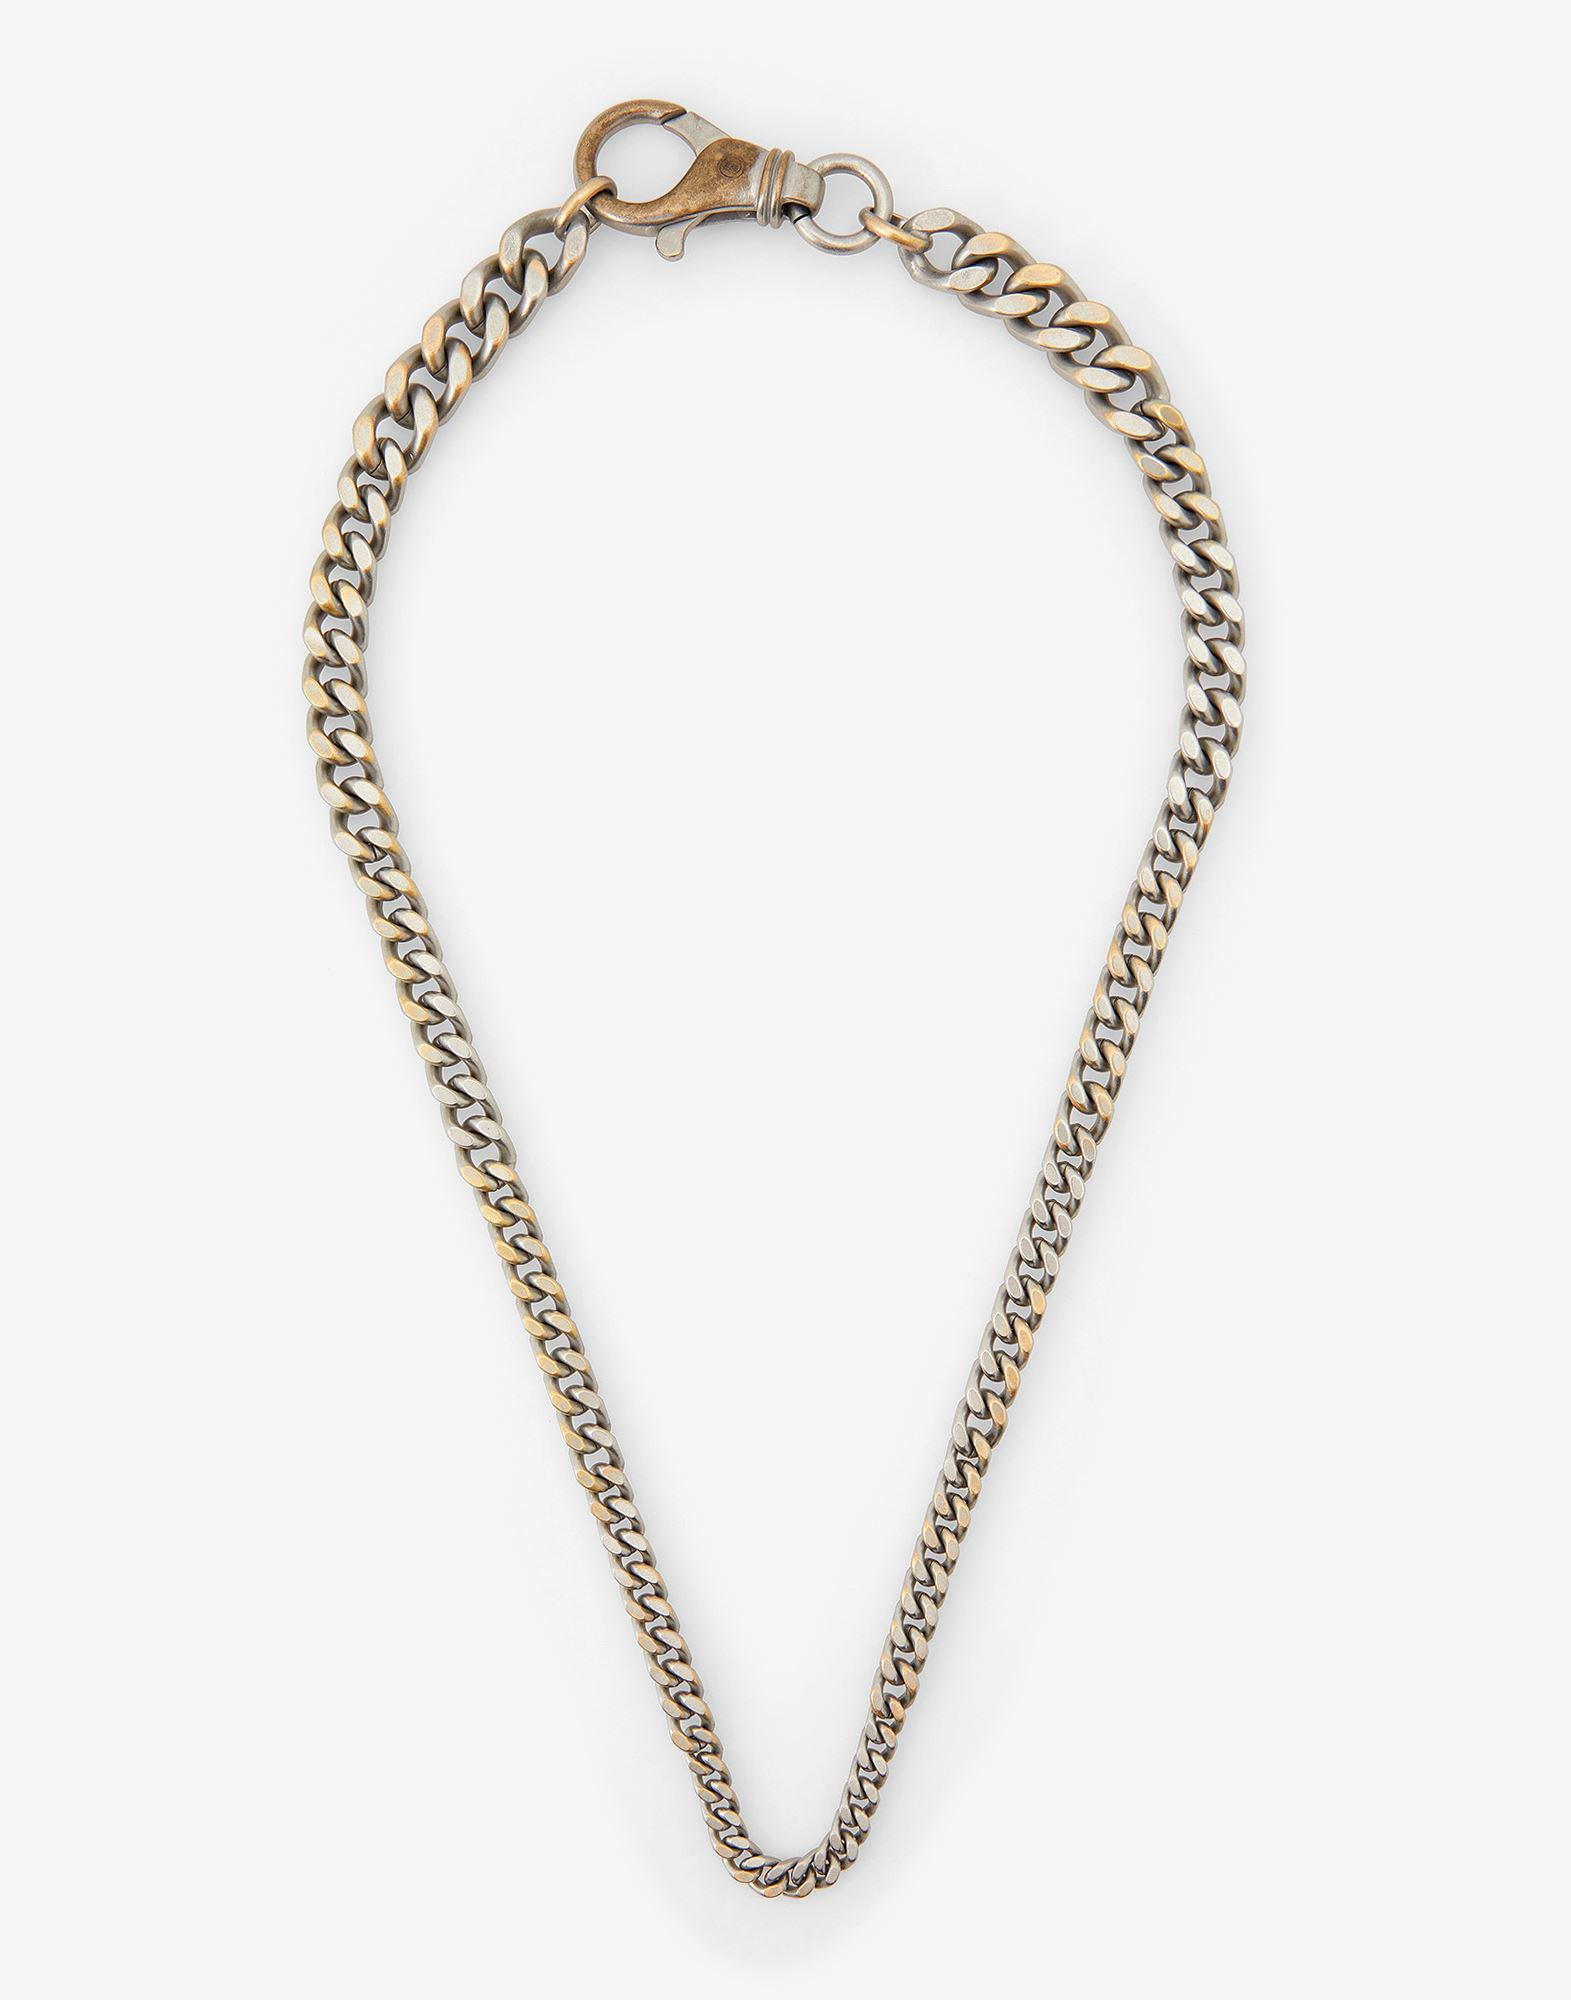 Reversed chain necklace